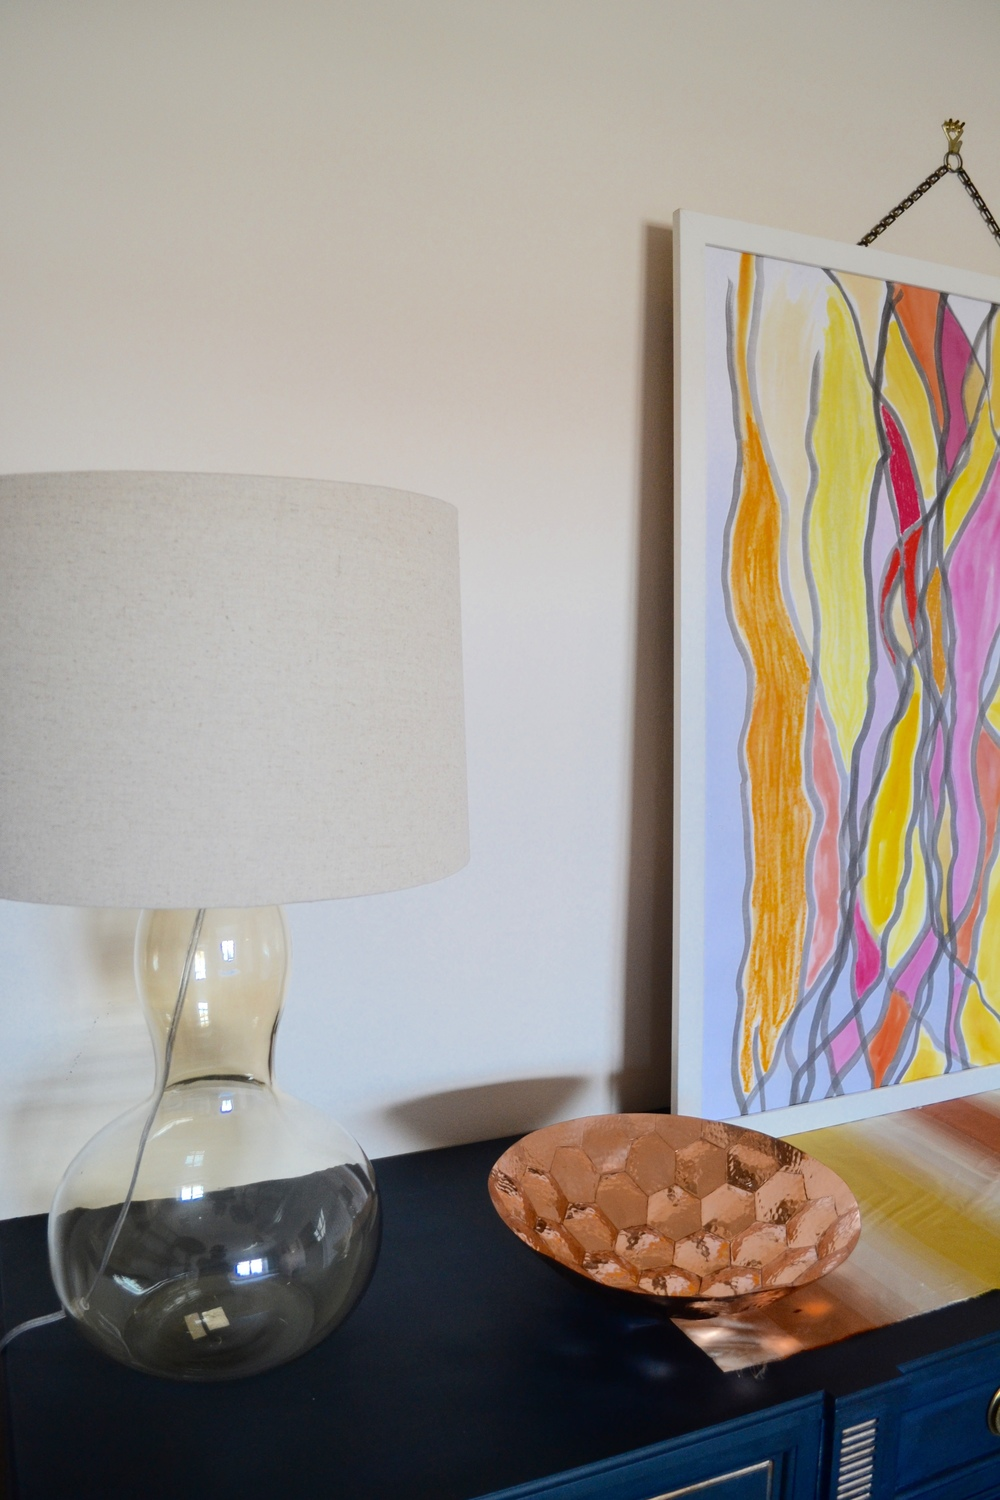 The lamps are from West Elm. Table runner and art by Client Crafty.